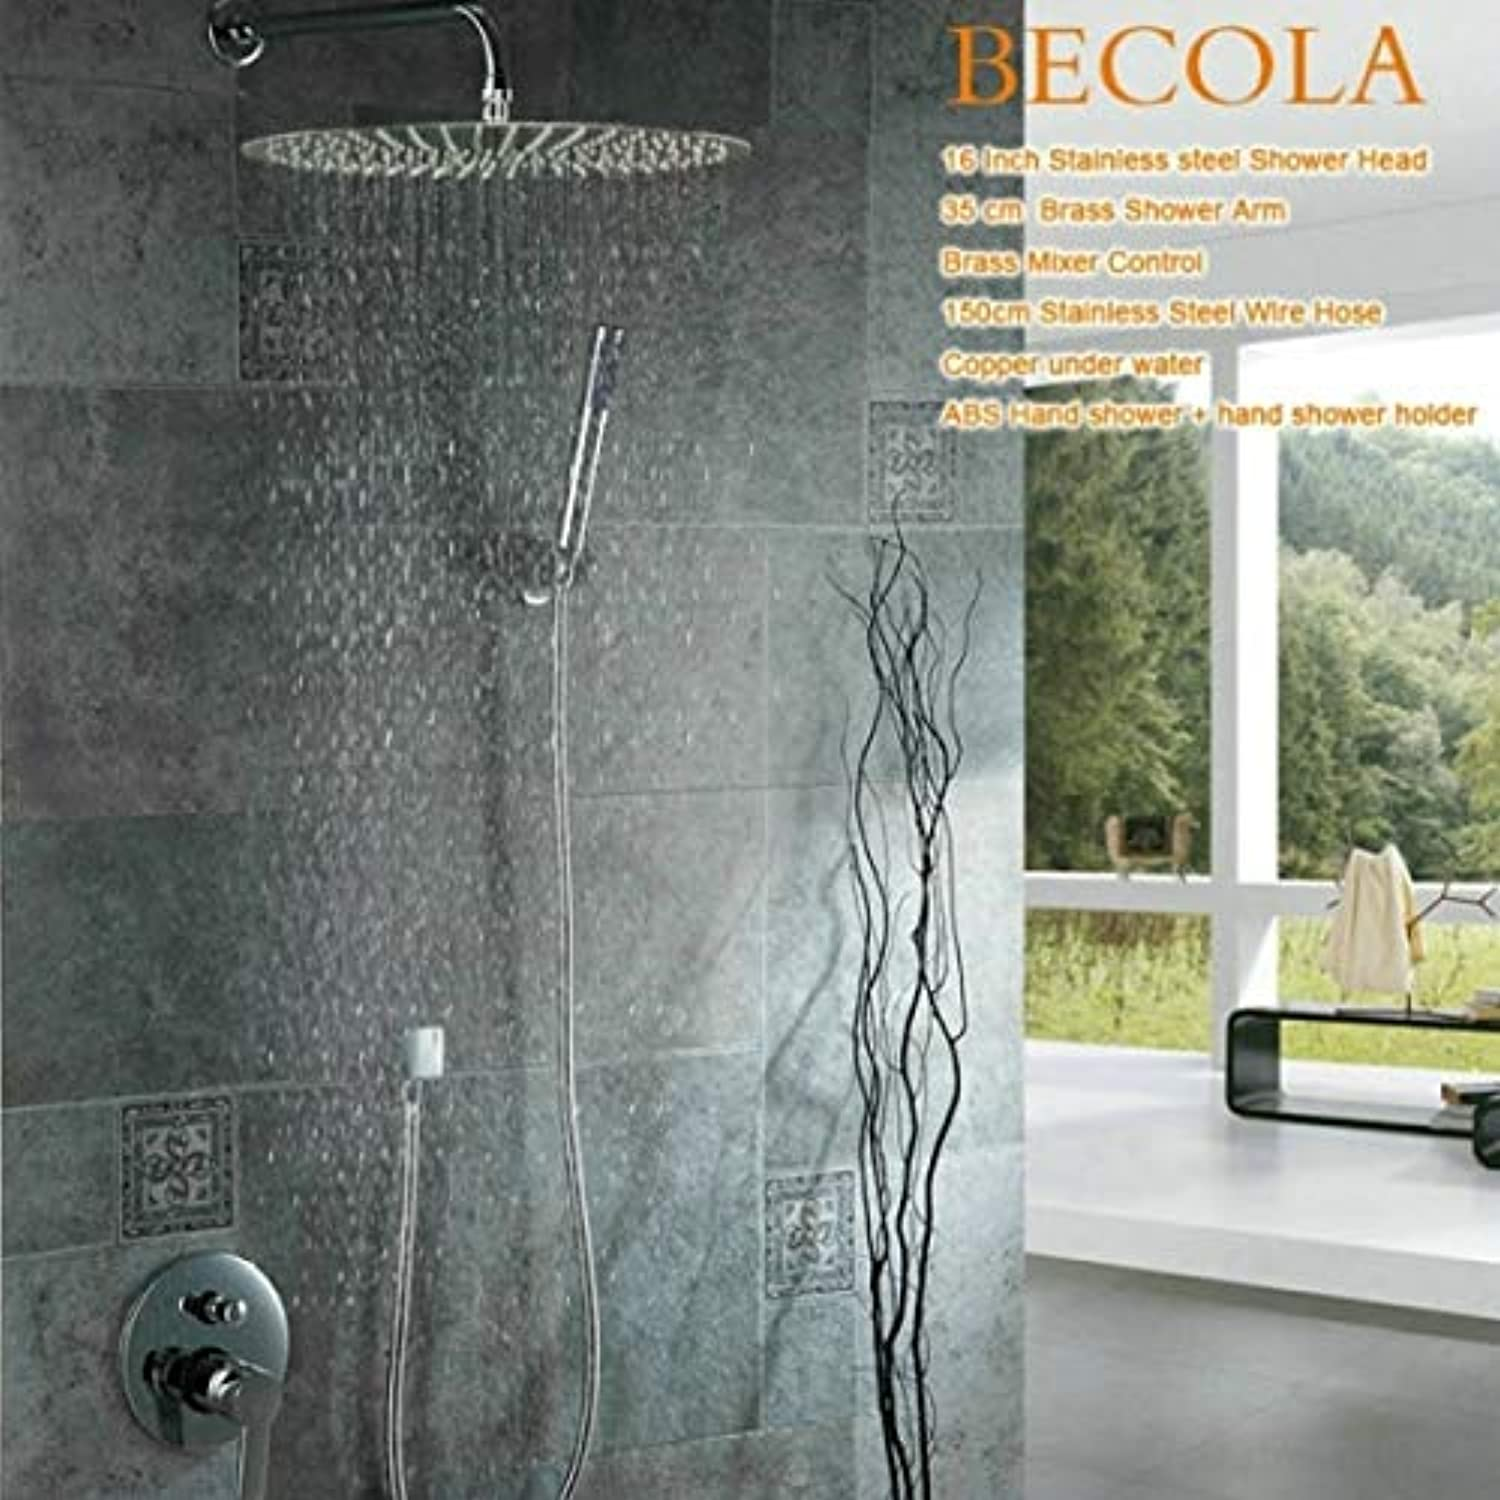 Free shipping becola 8 10 12 16 inch shower set wall mounted stainless steel rainfall head chrome shower faucet kit,16 inch shower set